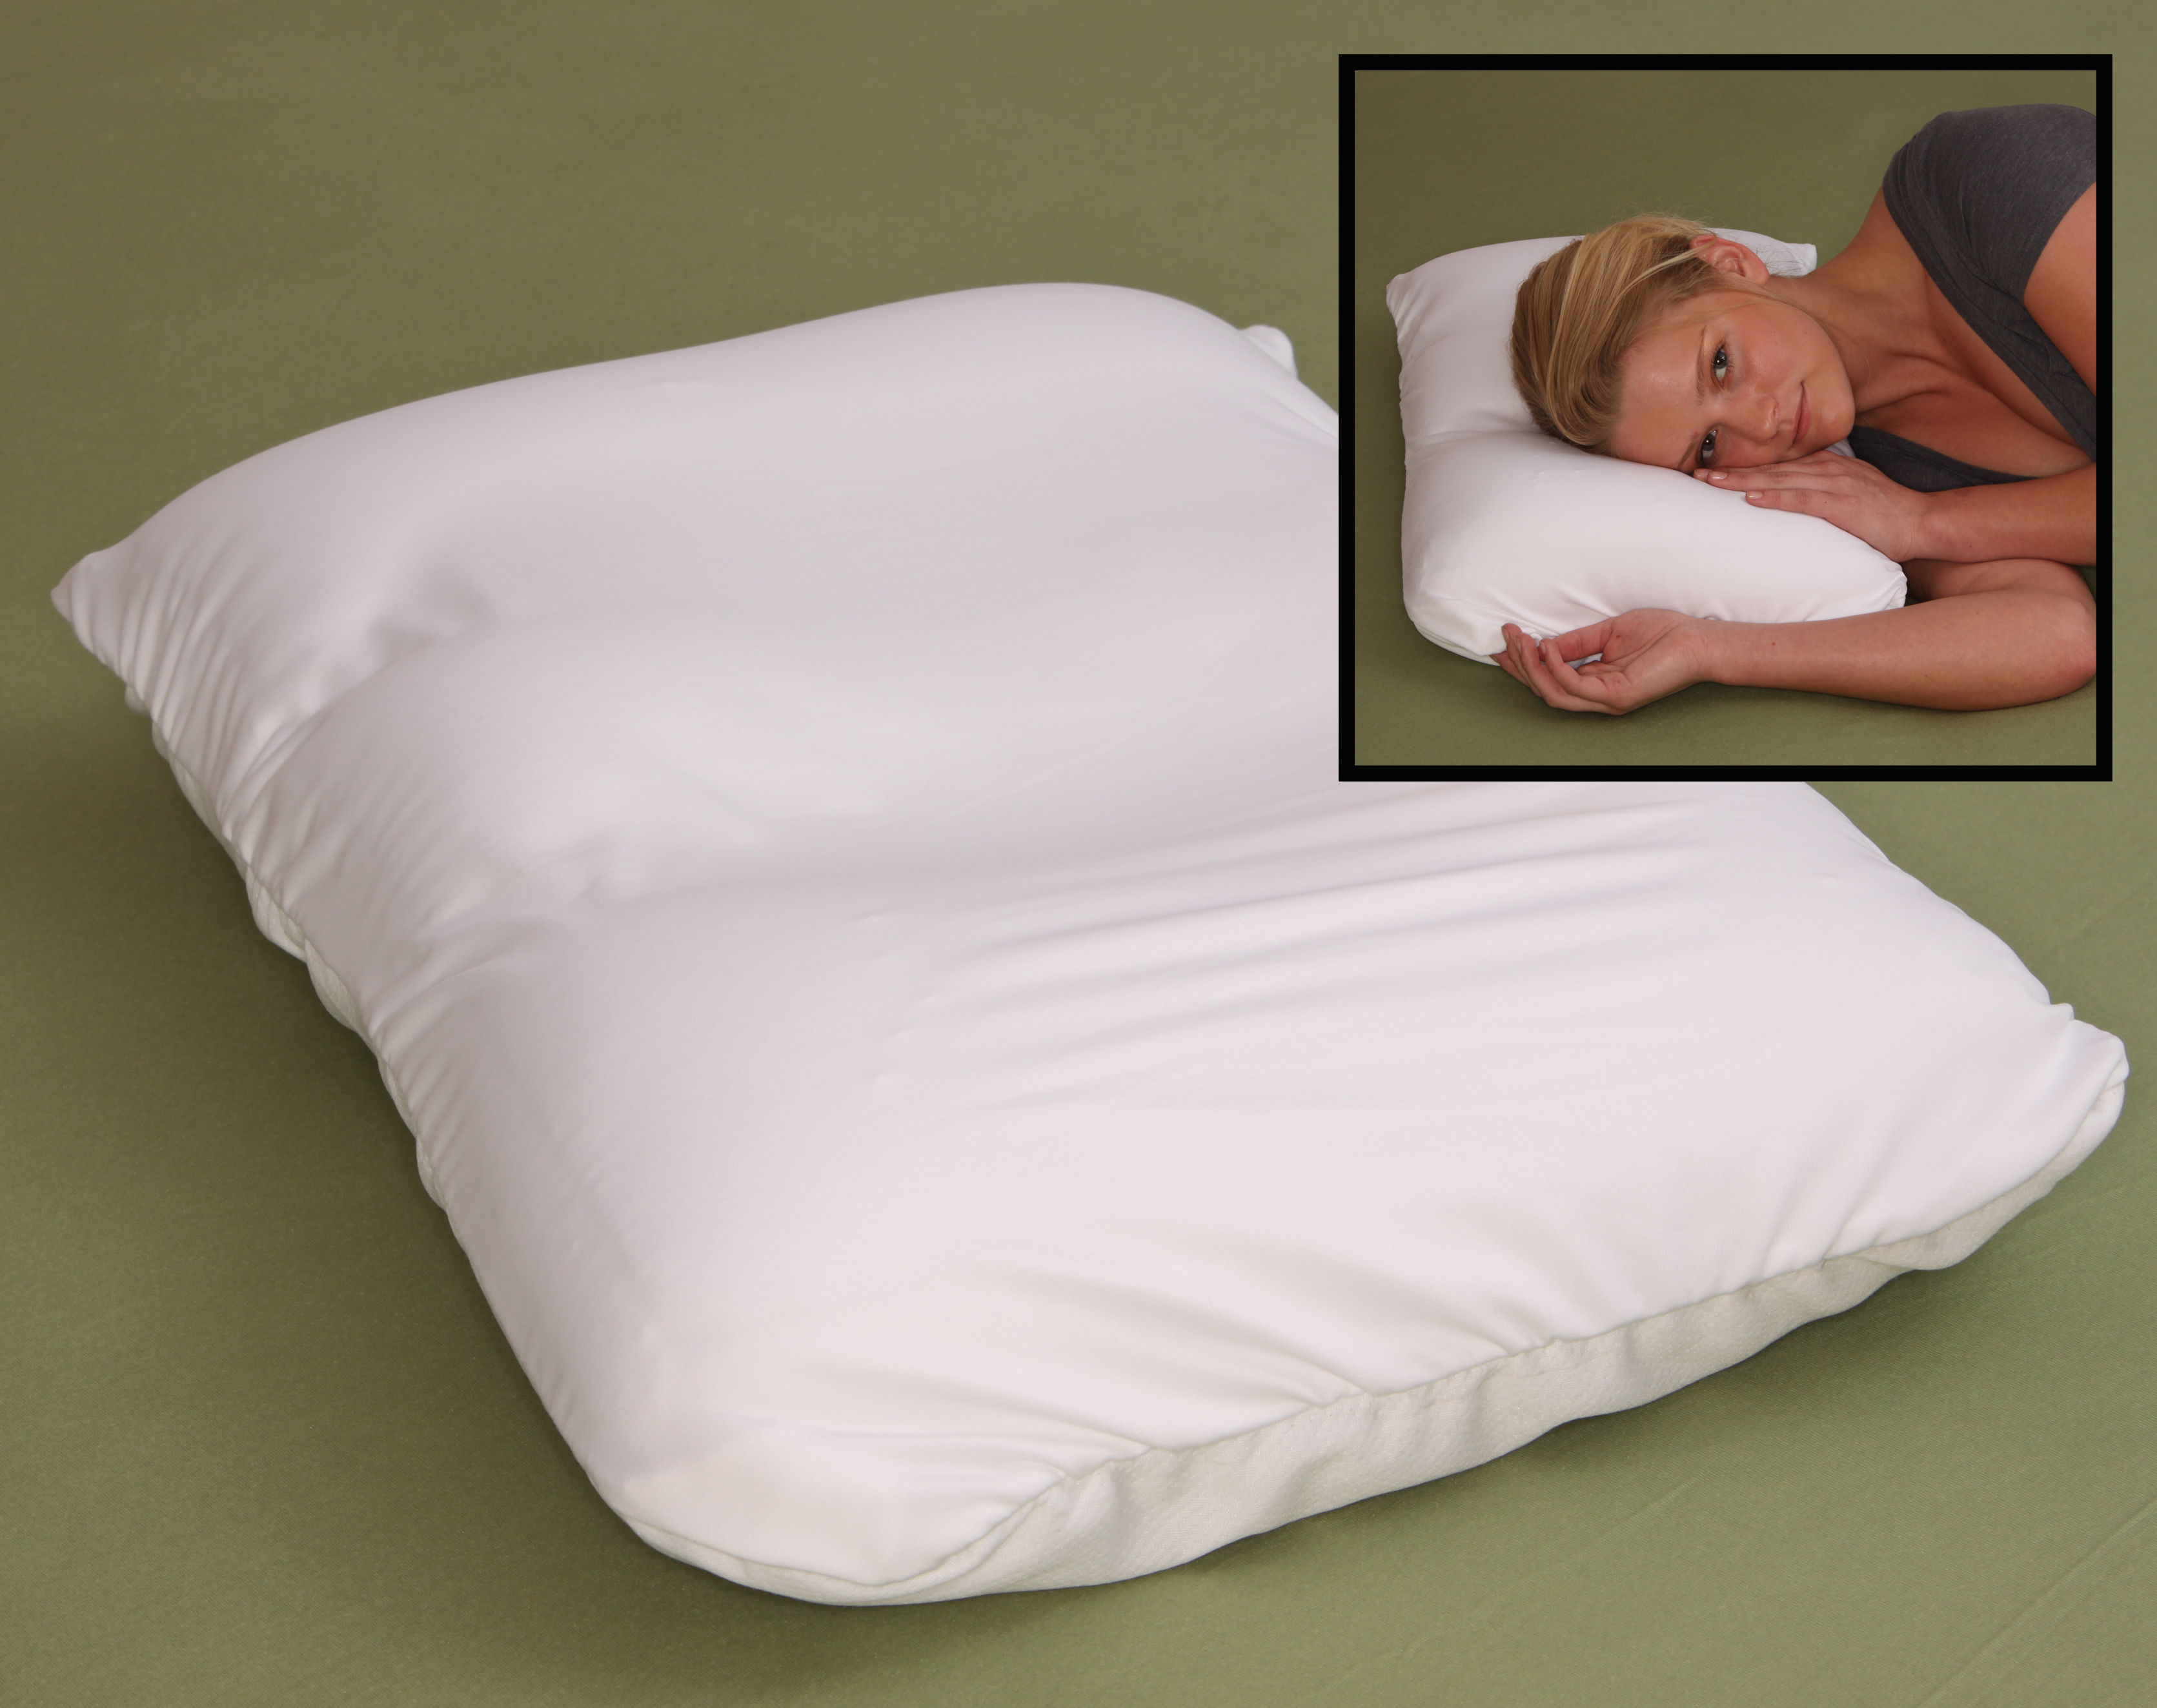 Microbead Pillow Most Comfortable Air Micro Bead Cloud Pillows Squishy, Yet Firm, Neck... by Living Healthy Products